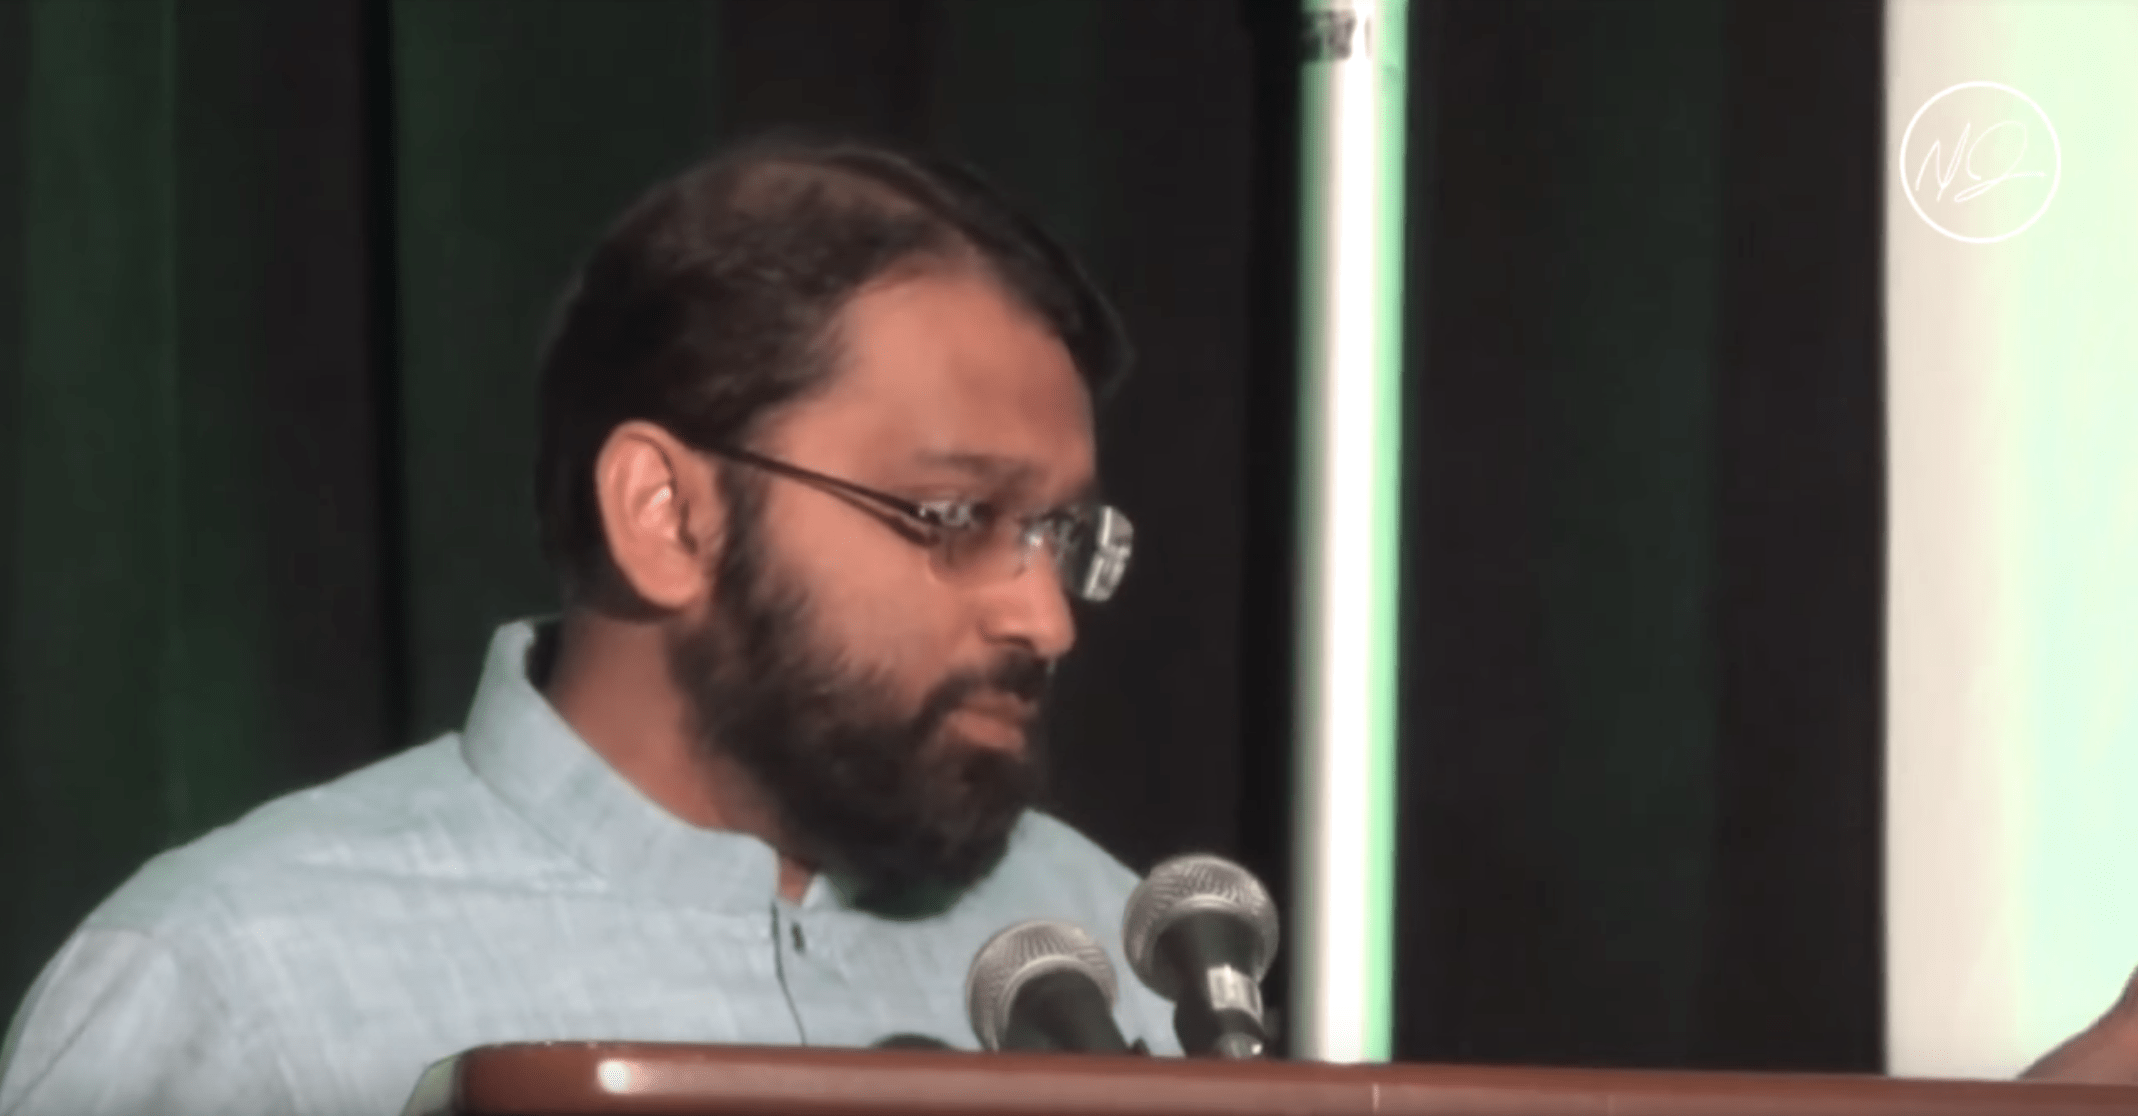 Yasir Qadhi – Shaykh Al Islam Ibn Taymiyyah: An Introduction